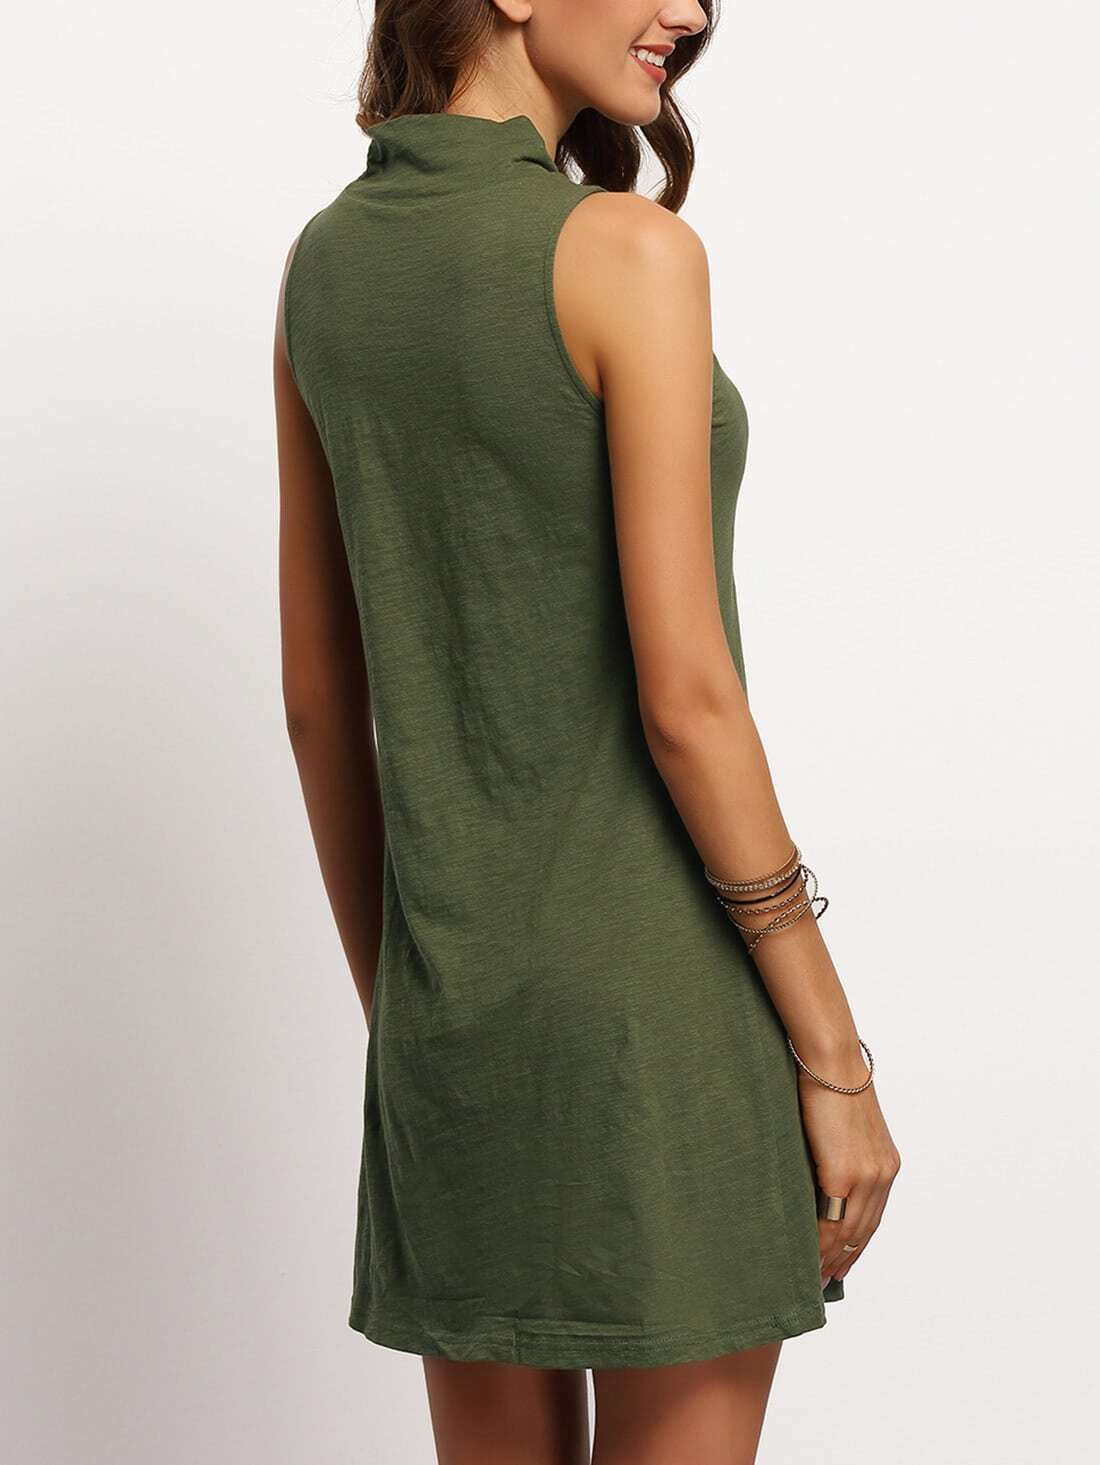 Blackish green mock neck sleeveless t shirt dressfor women for Sleeveless mock turtleneck shirts